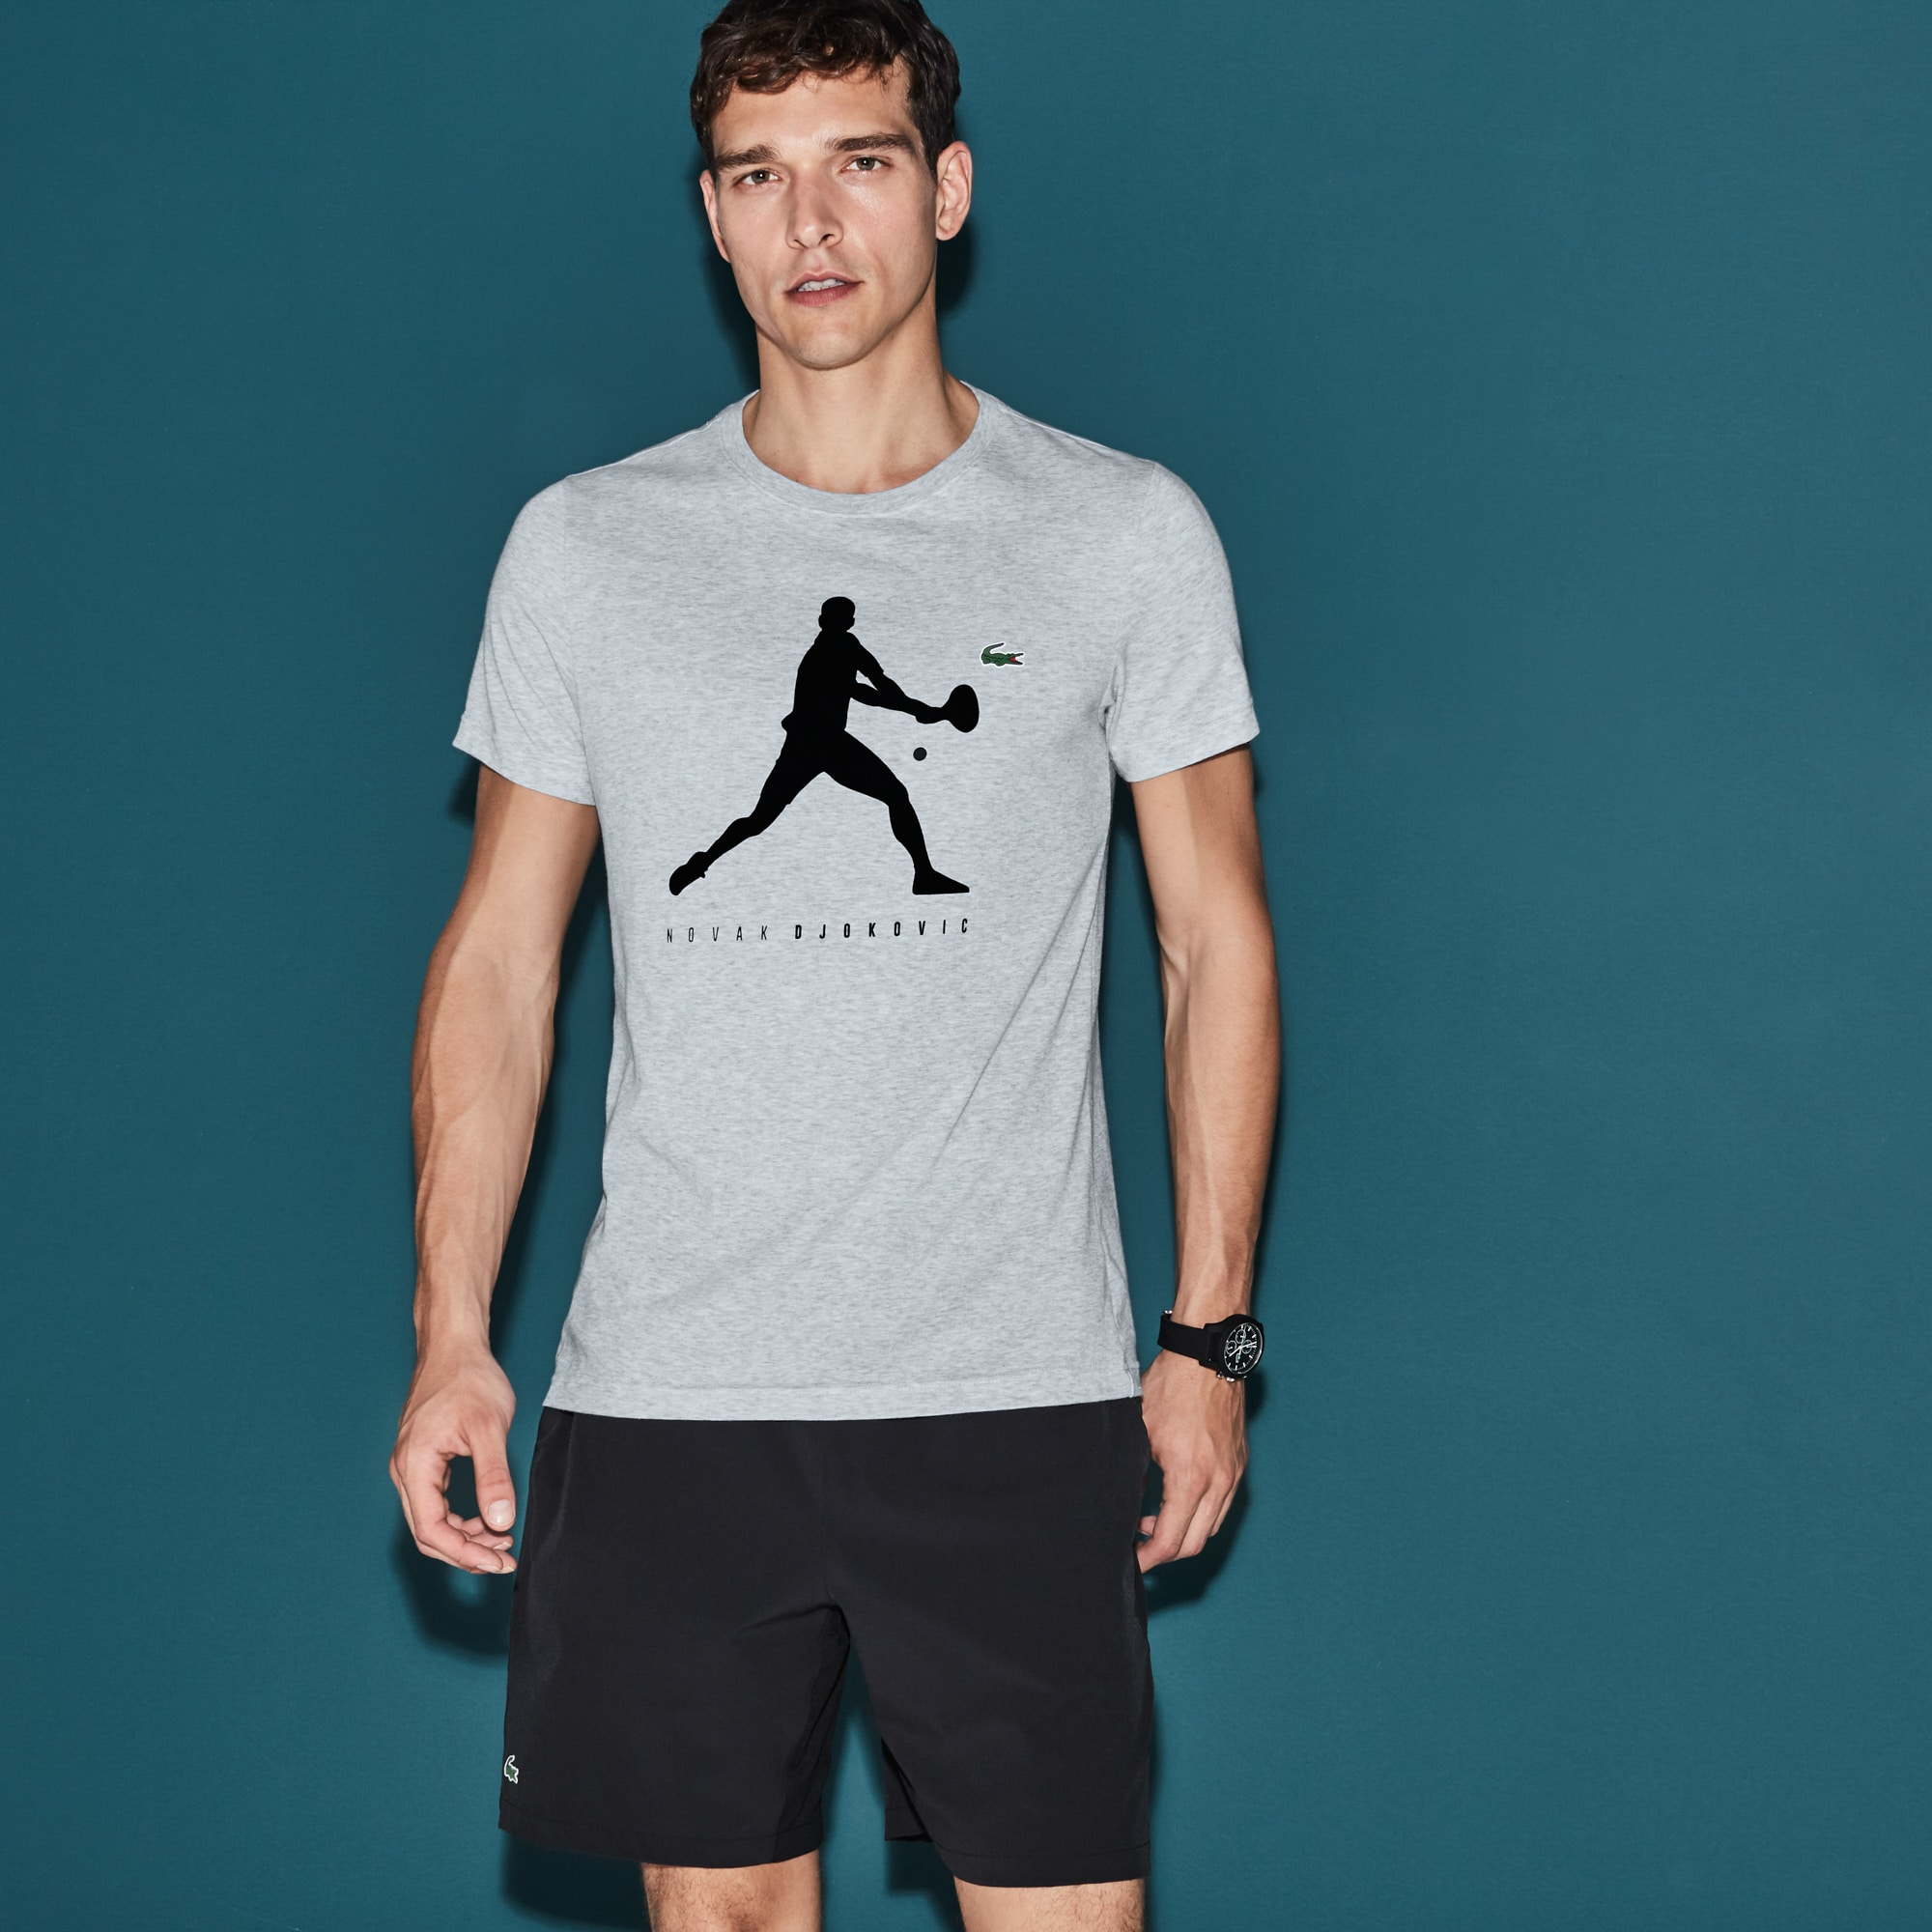 T-shirt Col Rond en Jersey Uni avec Imprimé - Collection Novak Djokovic Support With Style